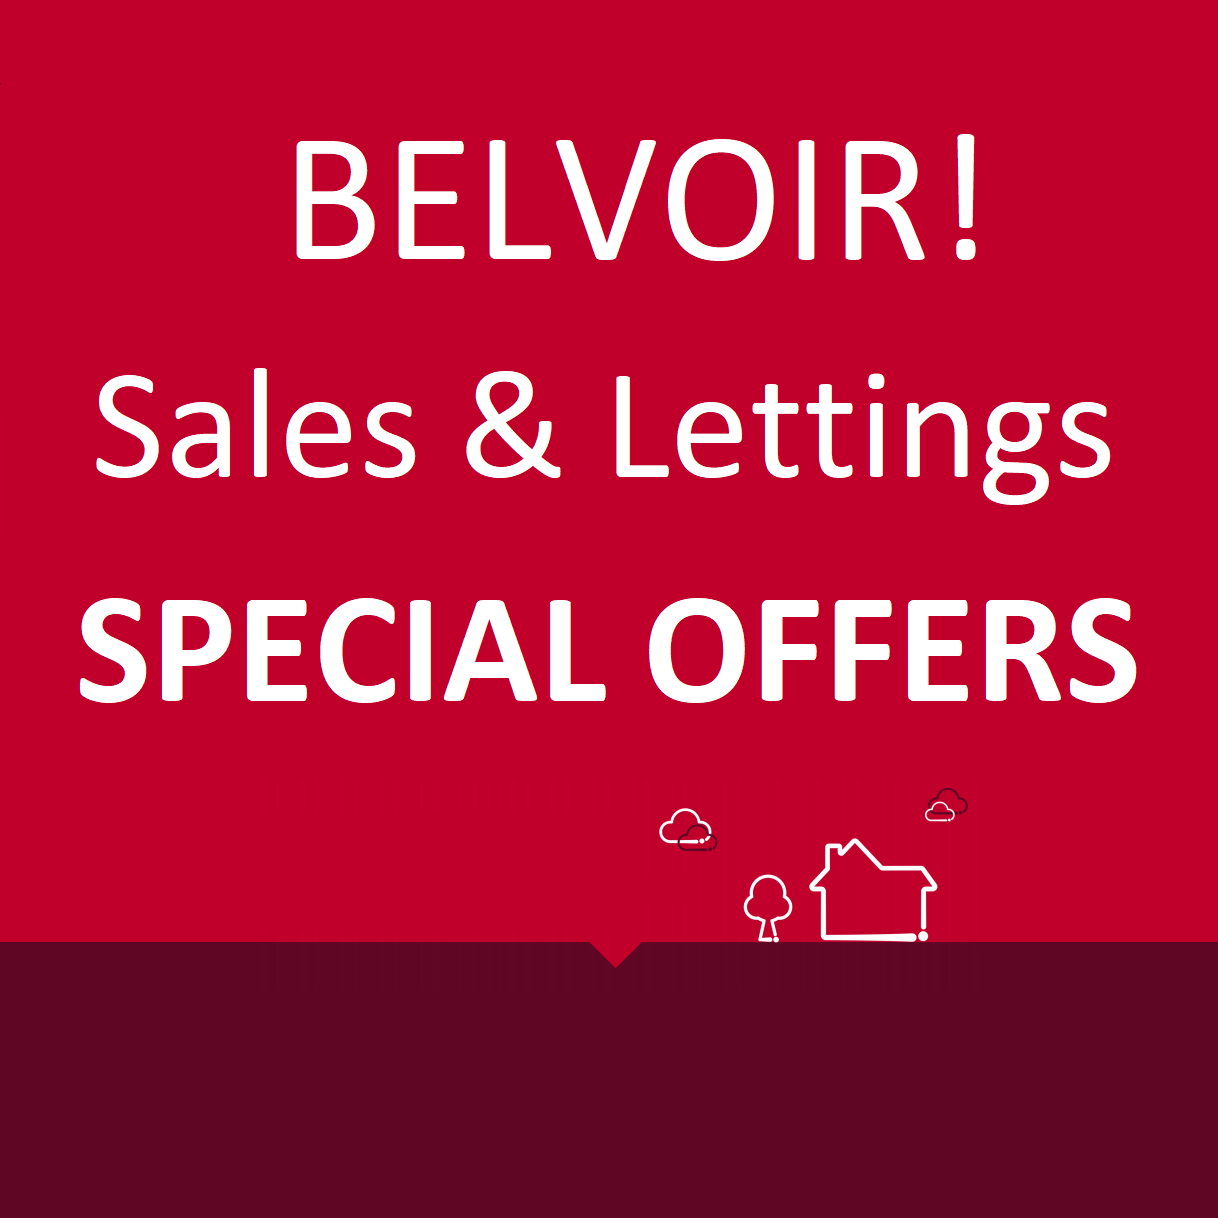 Special letting offer at Belvoir